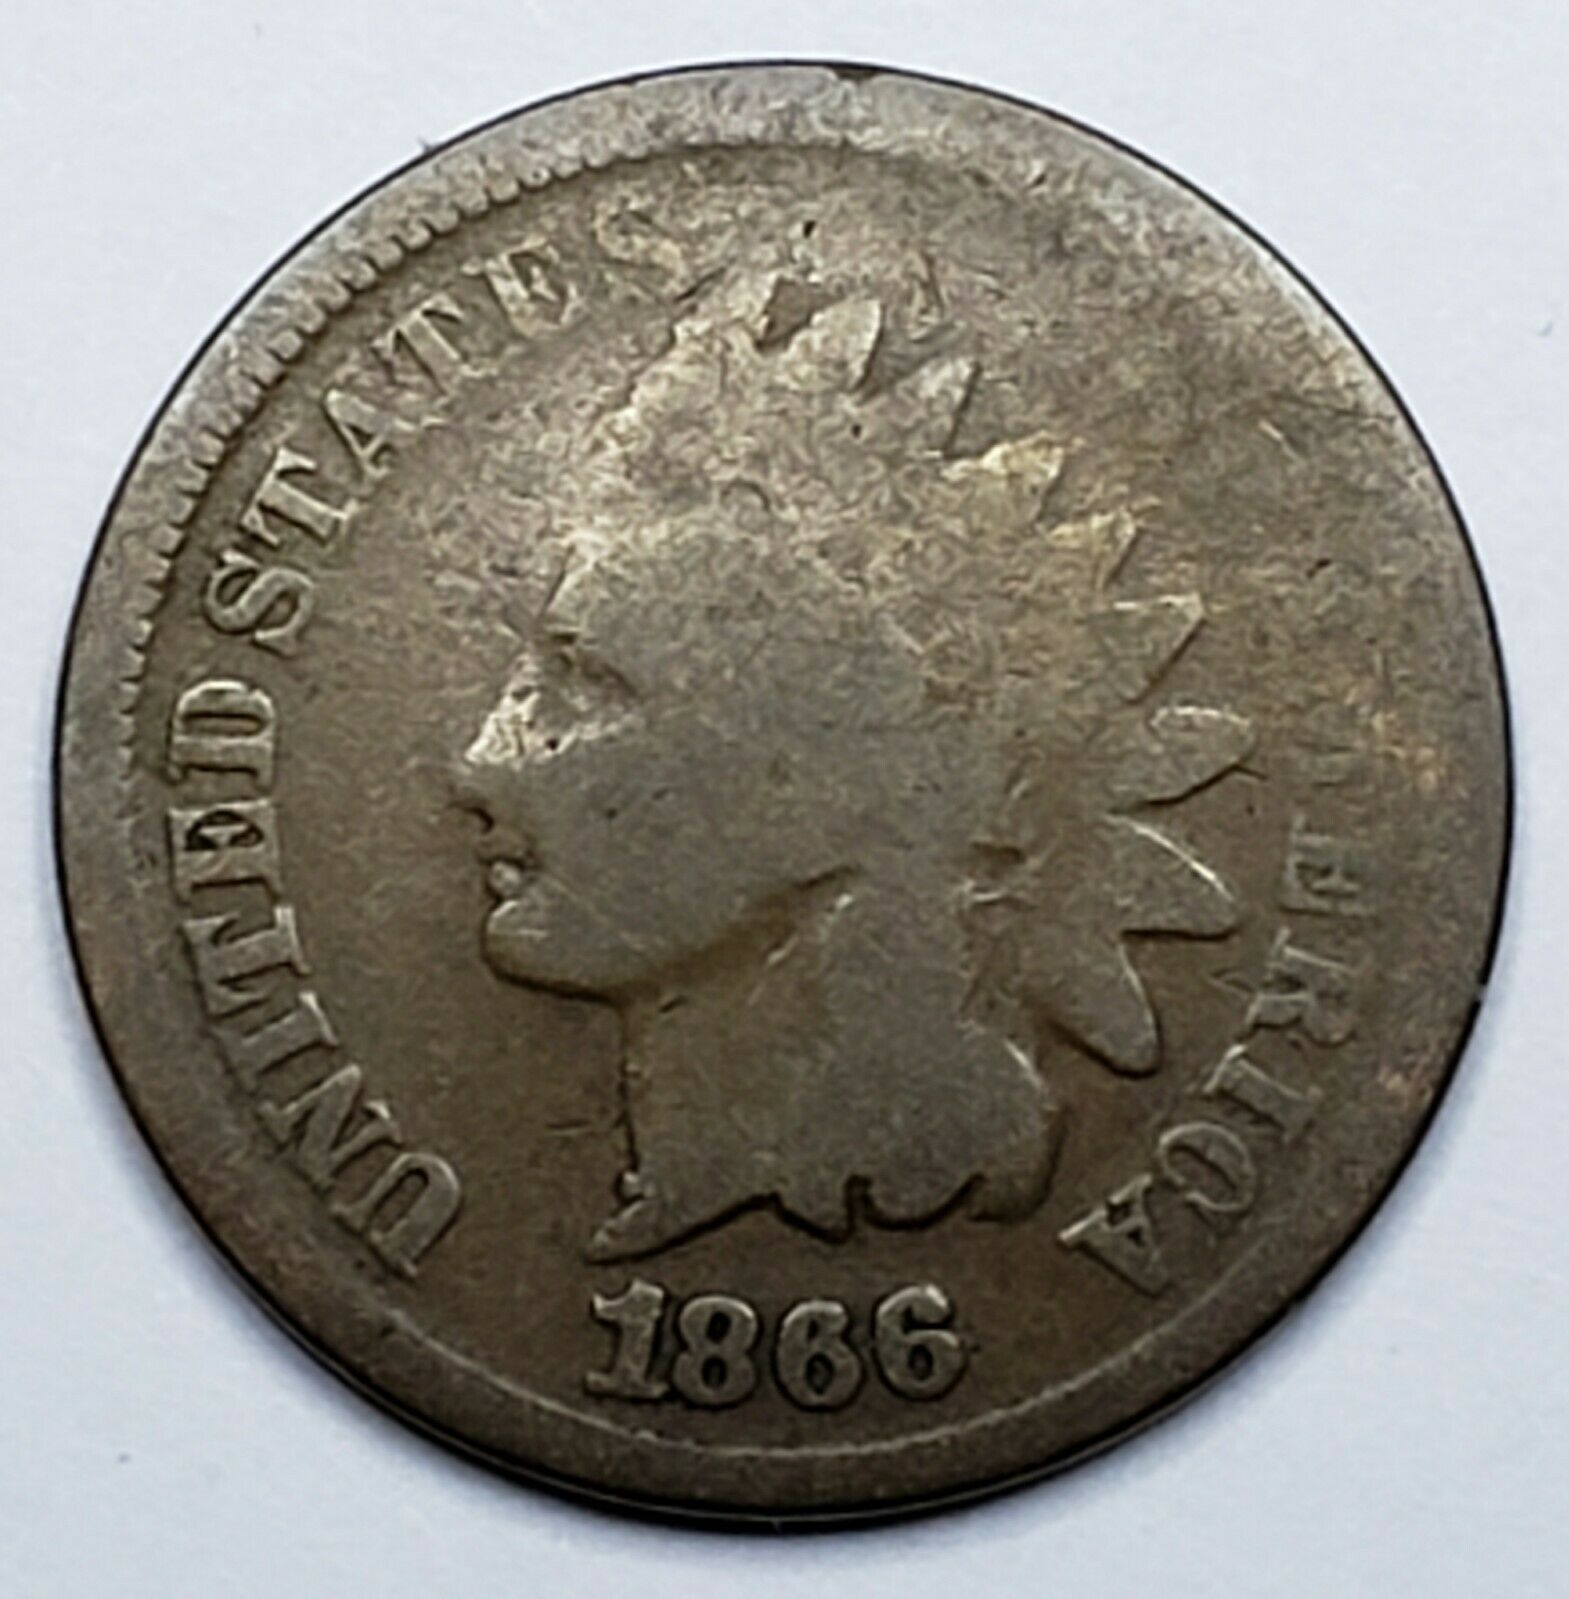 1866 Indian Head Cent Penny Coin Lot 519-88